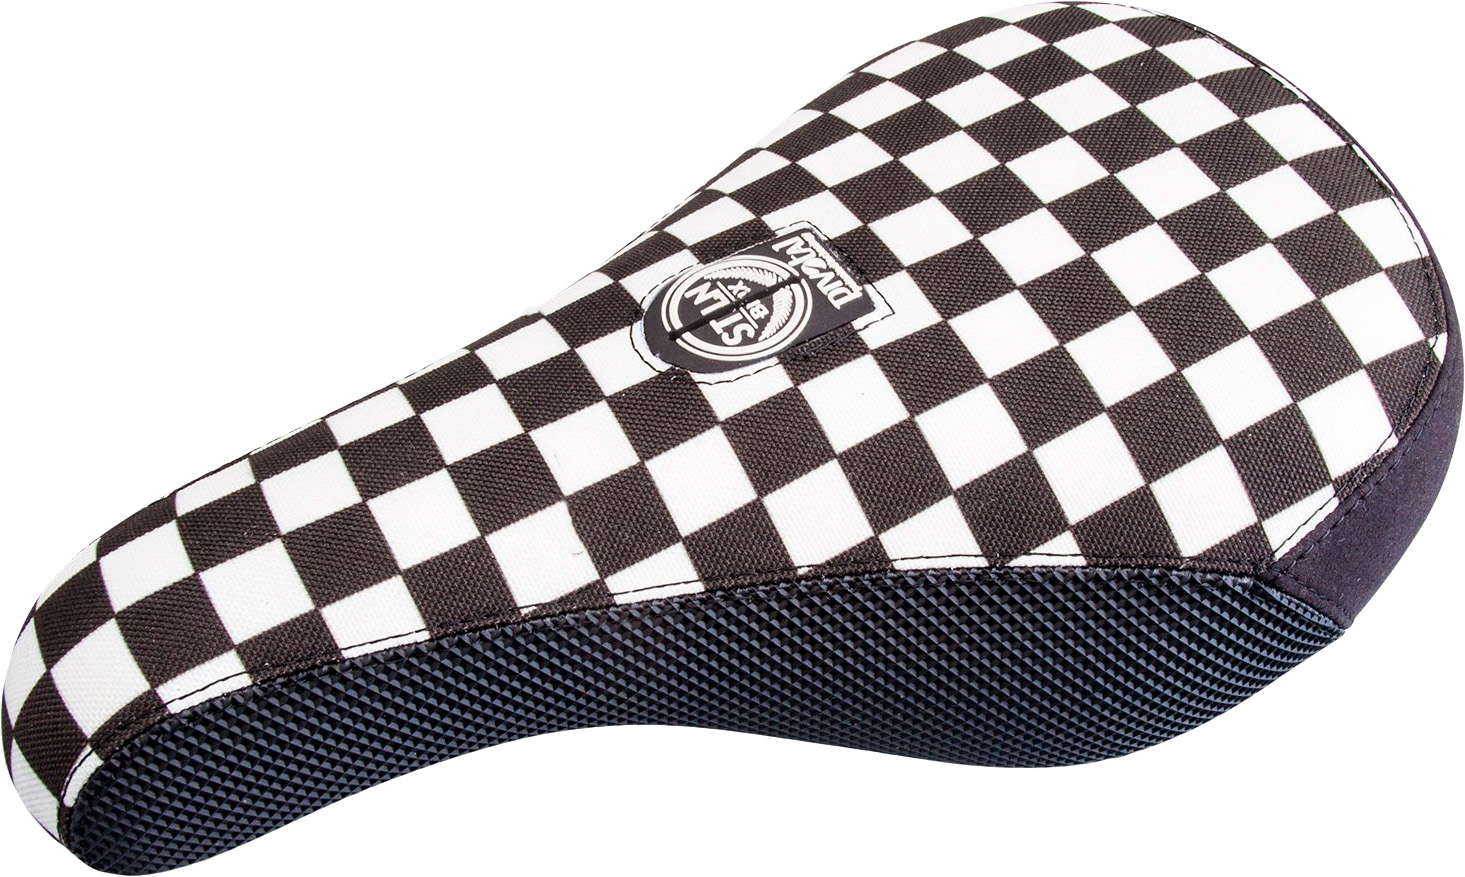 Stolen Checkered Pivotal Saddle | Sadler